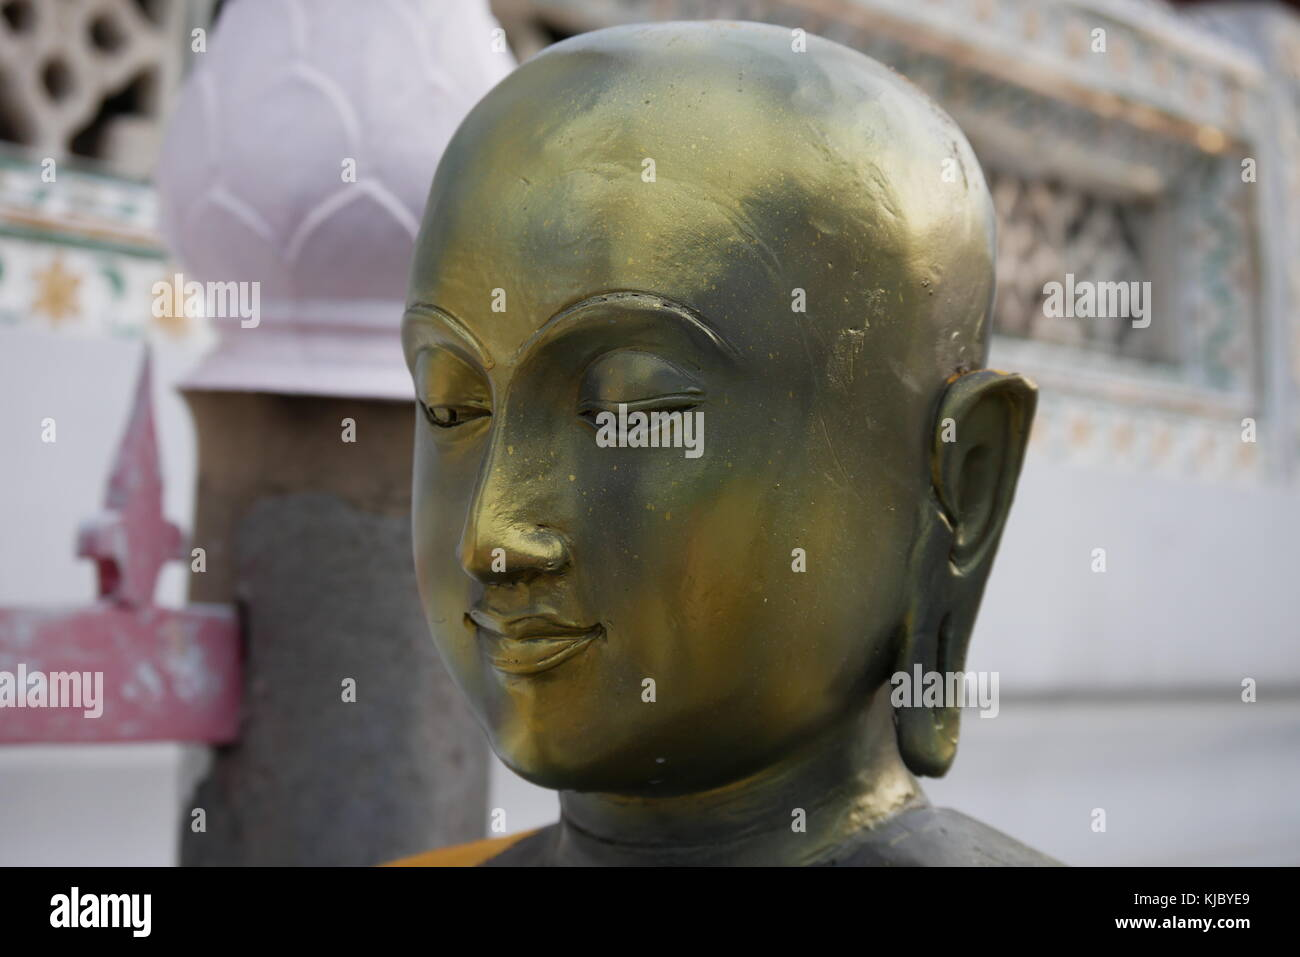 A golden statue of Buddha praying in Wat Arun, the Temple of Dawn, in Bangkok, Thailand. - Stock Image